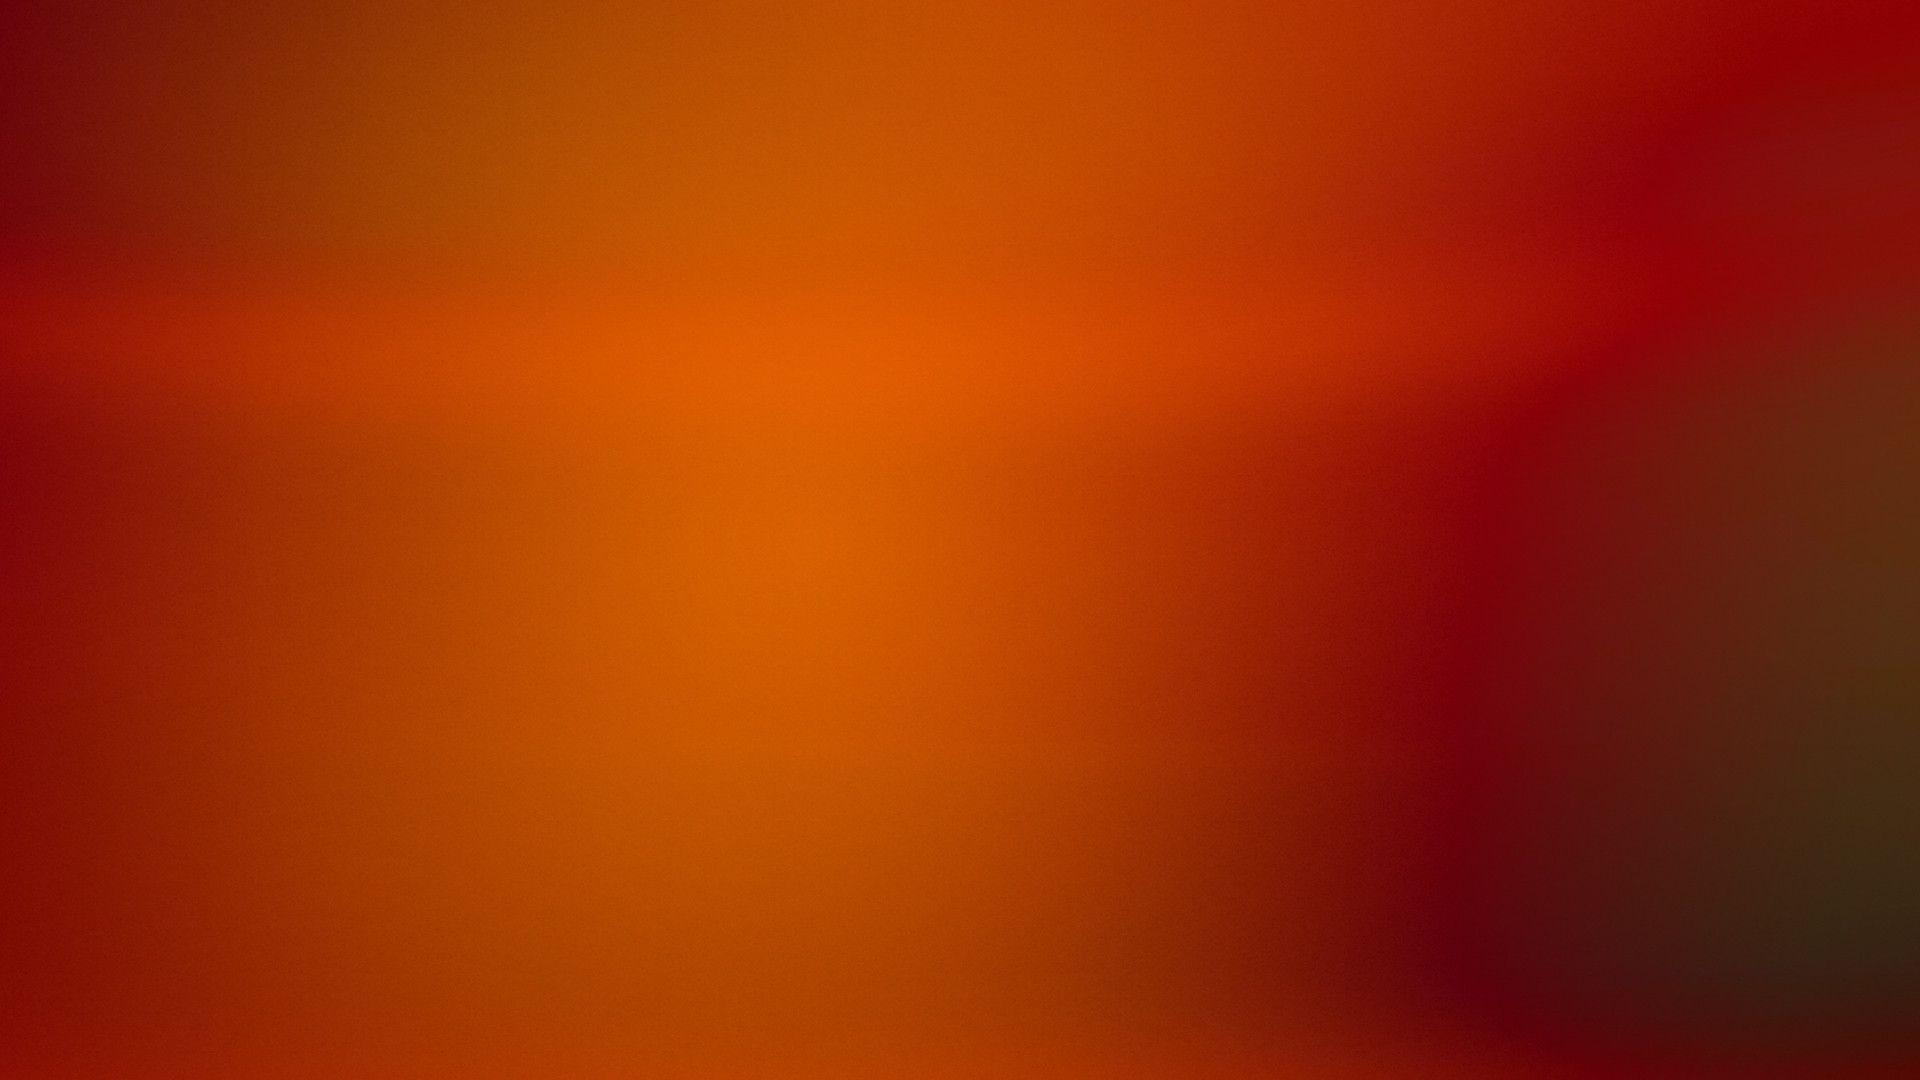 Wallpaper Orange Color 61 Images: Wallpapers For Backgrounds